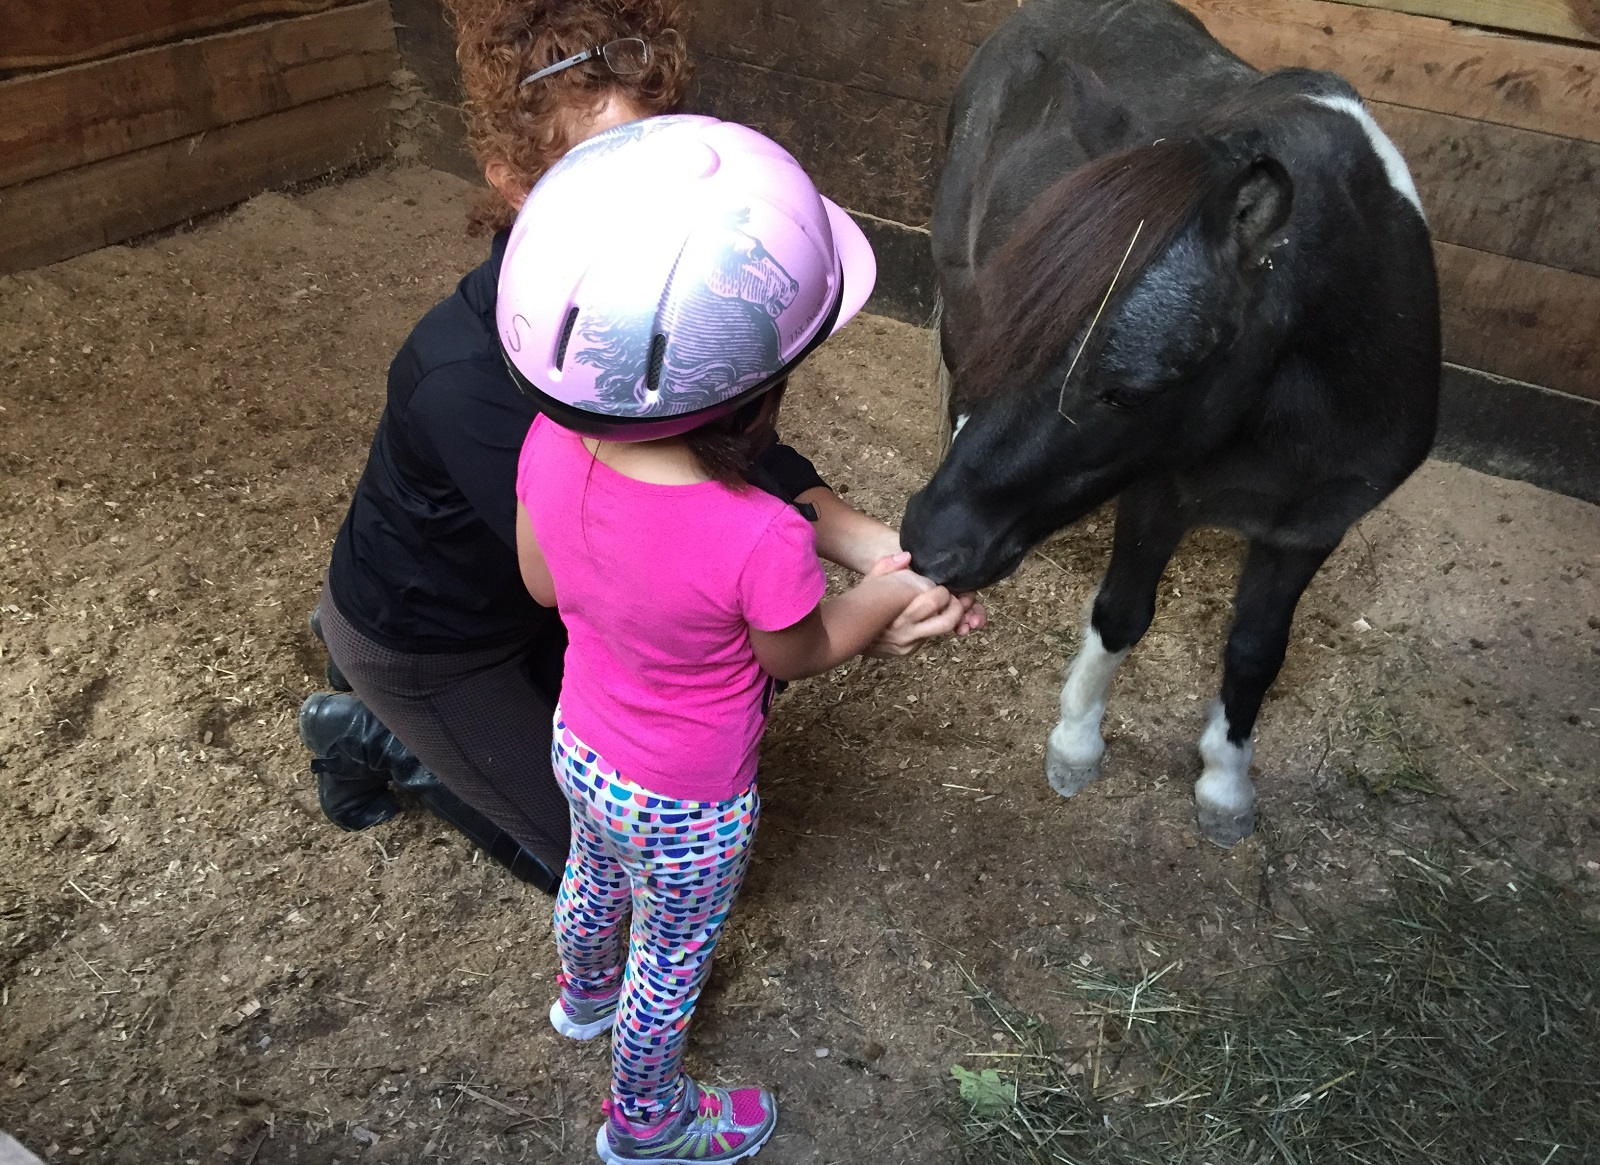 The horses are very gentle and calm at Lothlorien Therapeutic Riding Center in East Aurora. (Mary Friona-Celani/Special to The News)